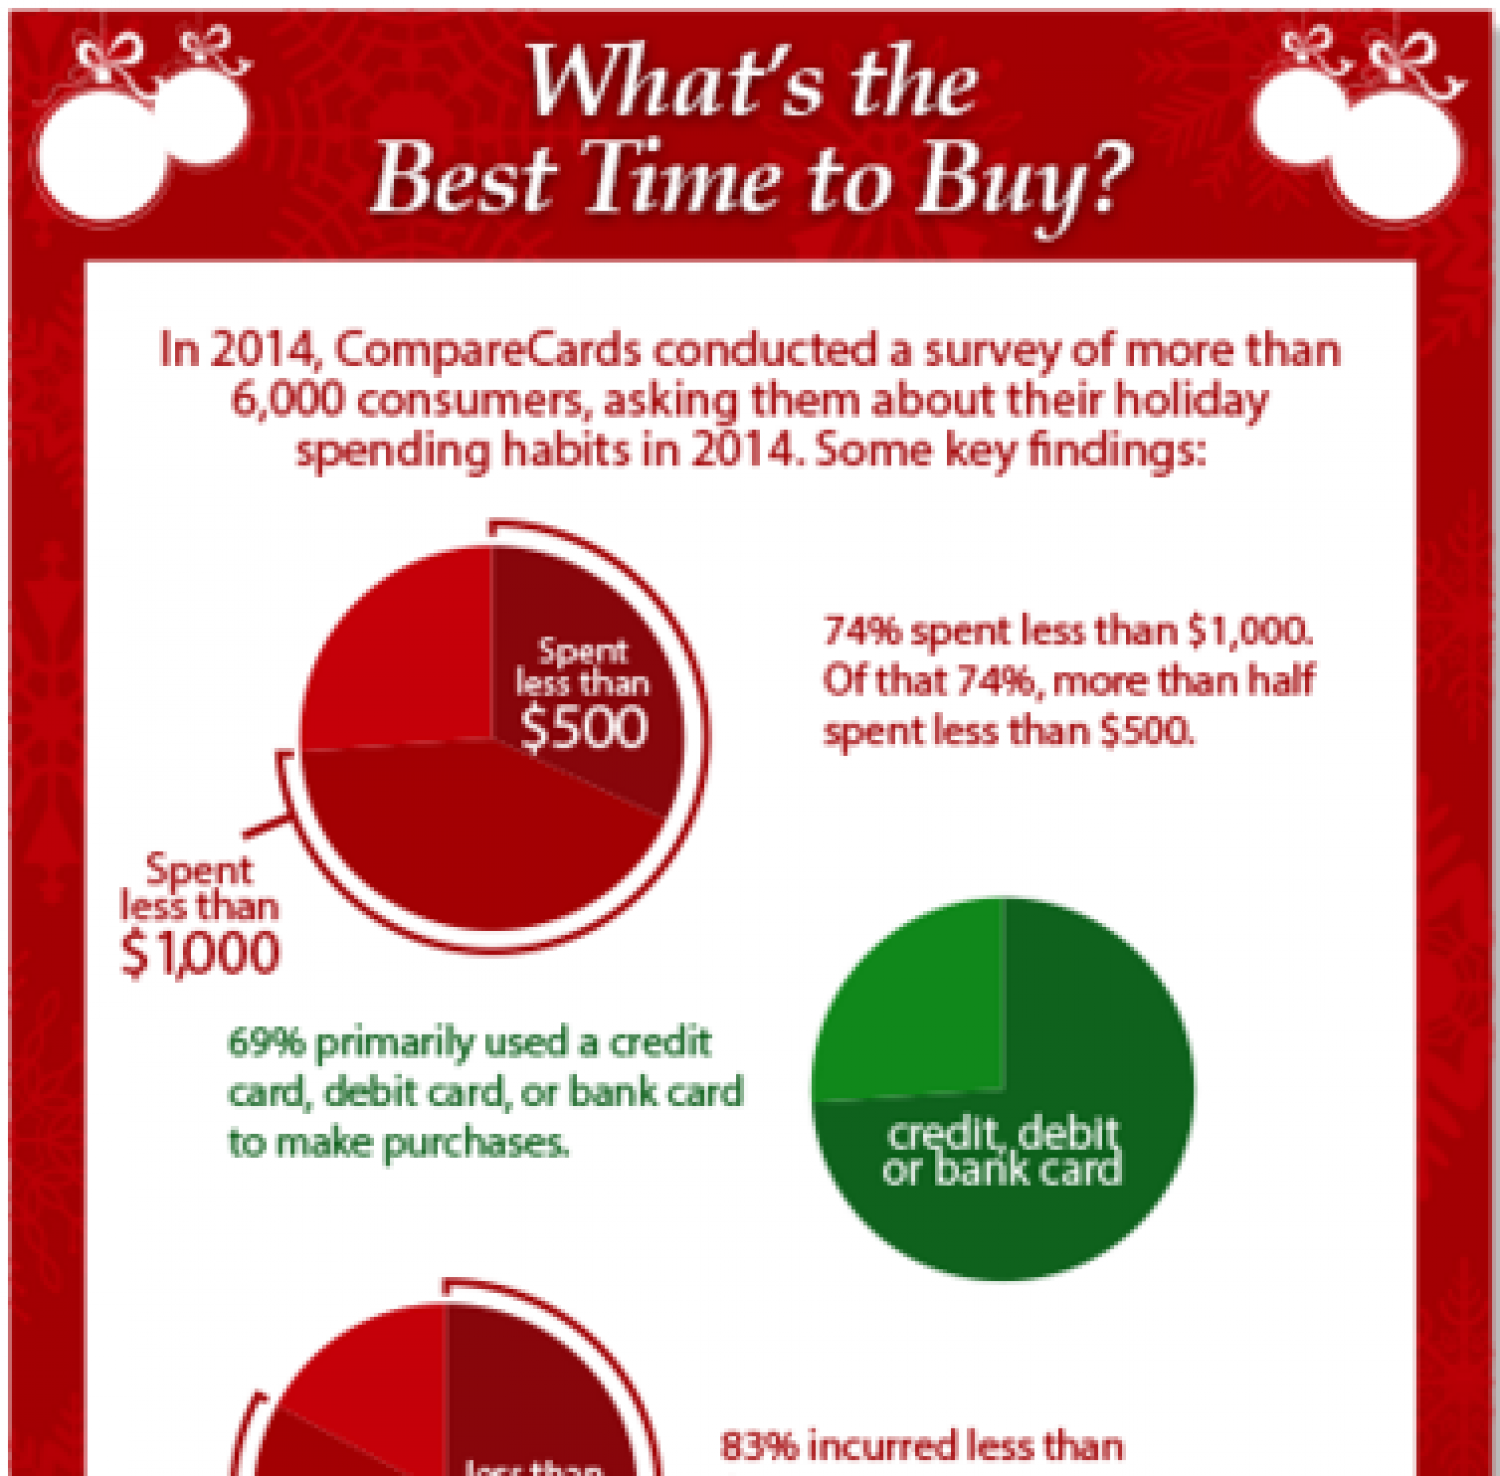 What's the Best Time to Buy? Infographic